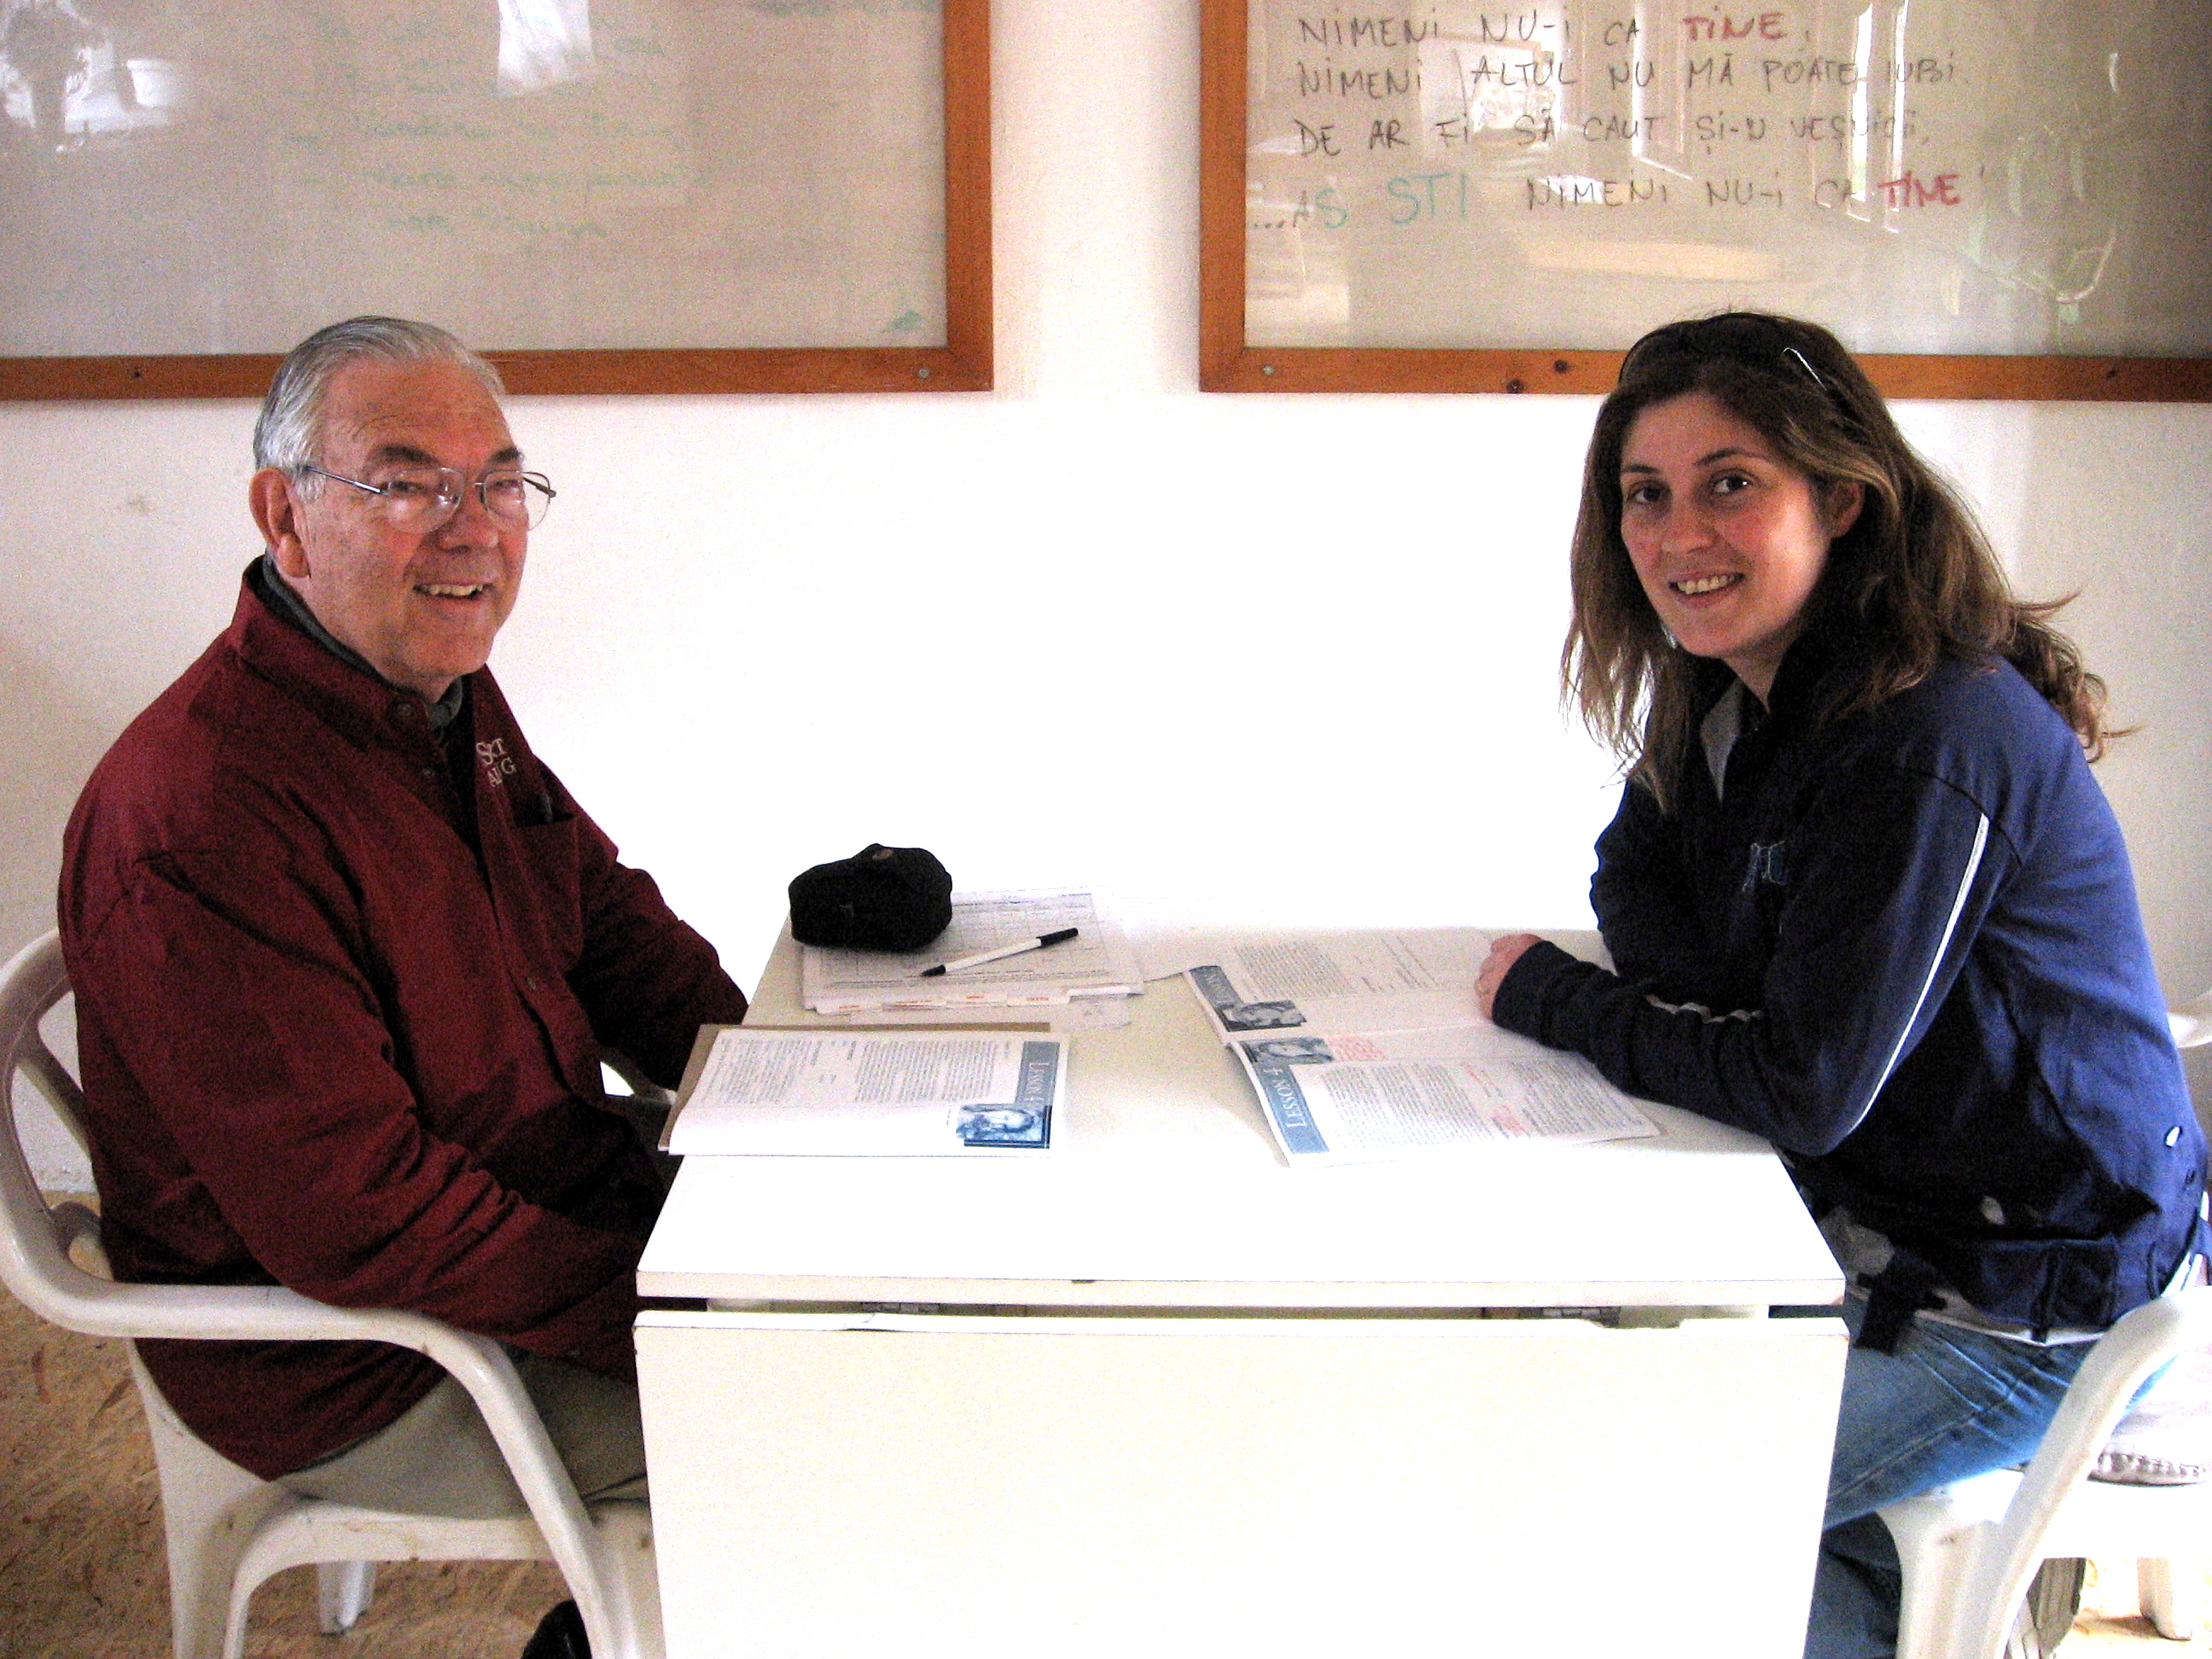 Dan helped Anamaria improve her conversational English!